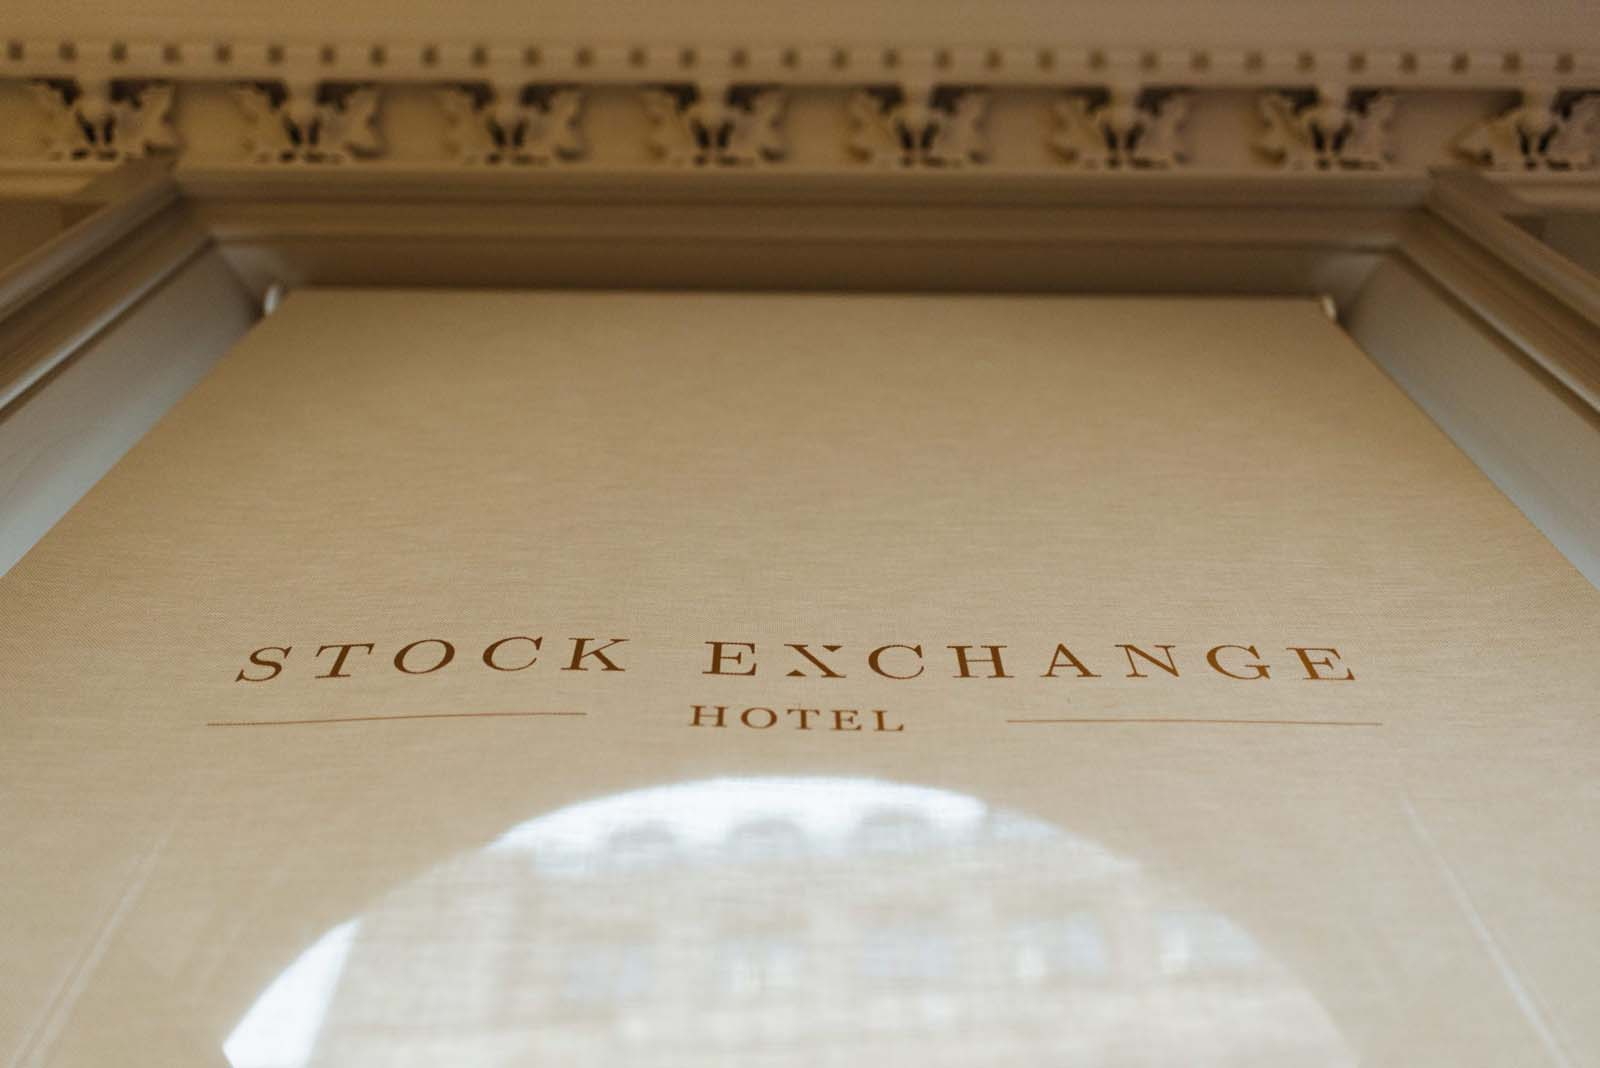 Curtain with Stock Exchange Hotel logo